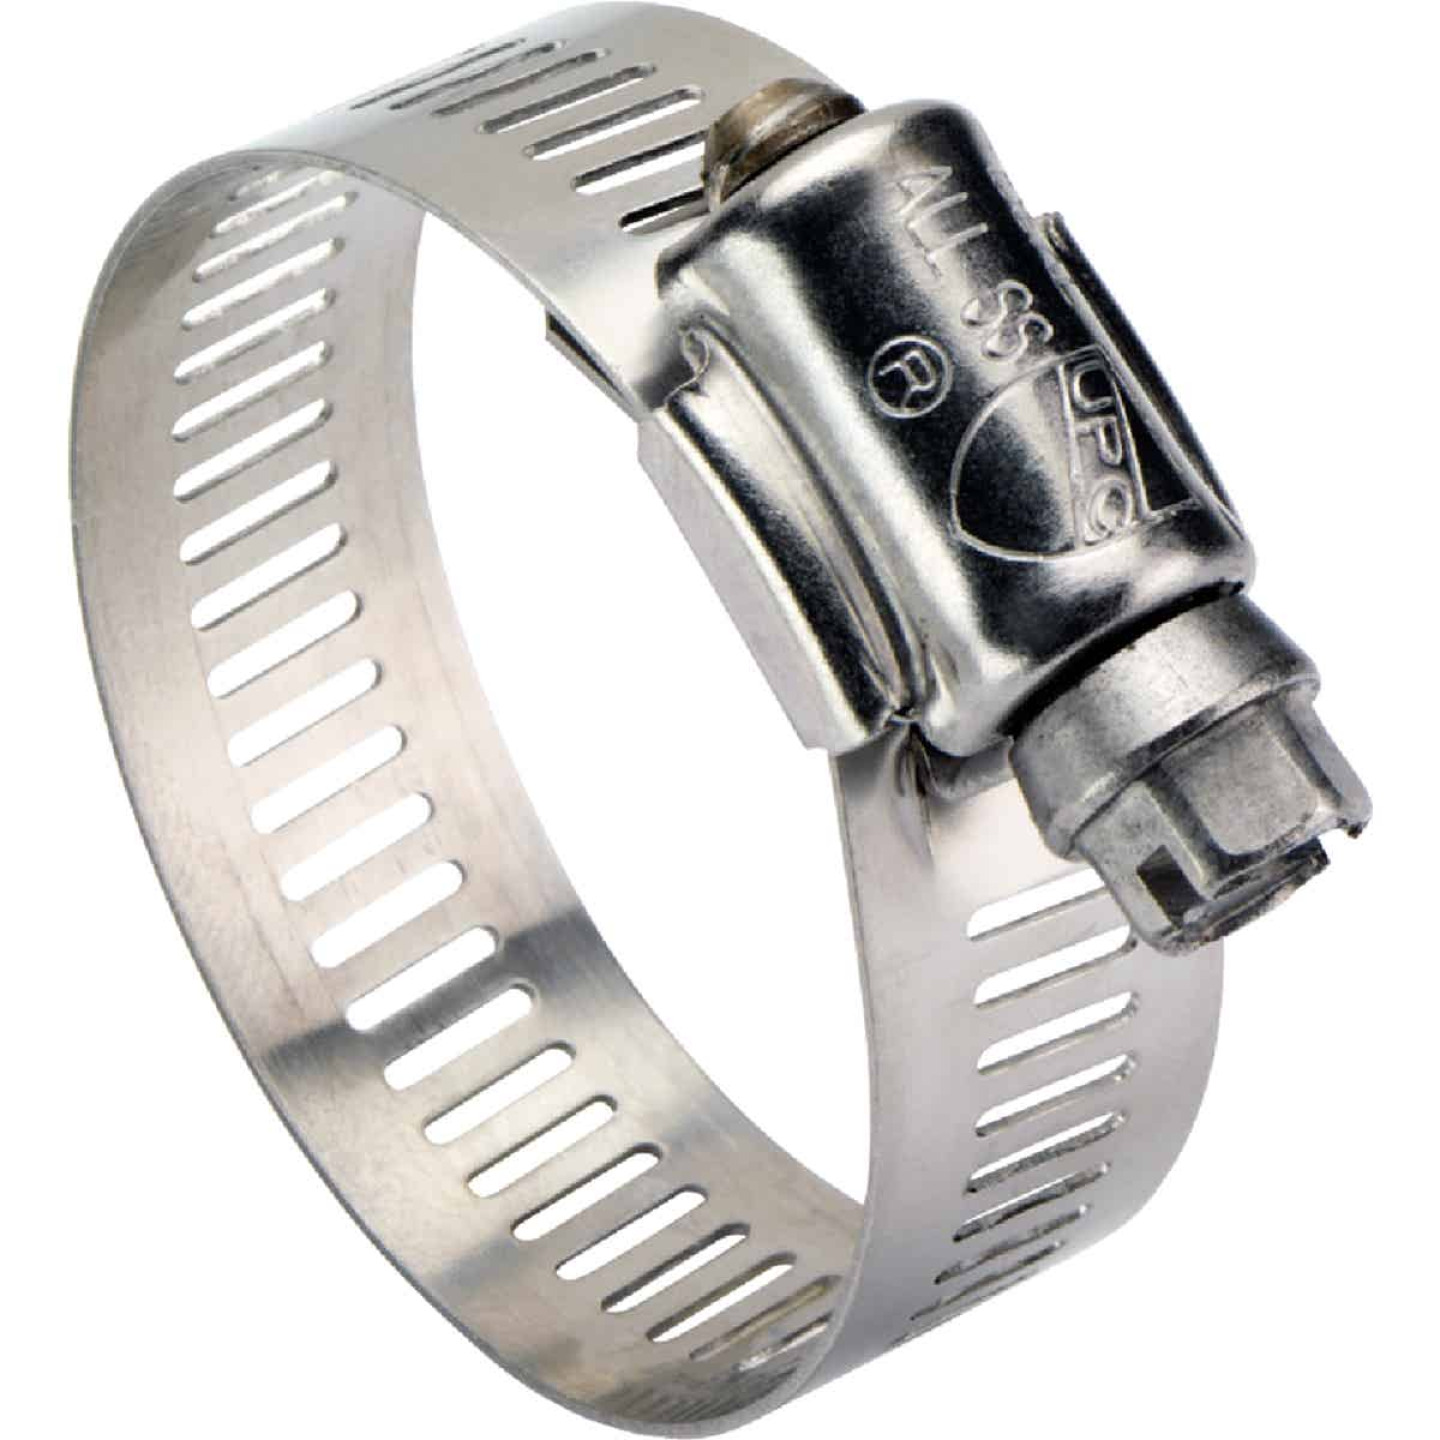 Ideal 3/8 In. - 7/8 In. All Stainless Steel Marine-Grade Hose Clamp Image 1